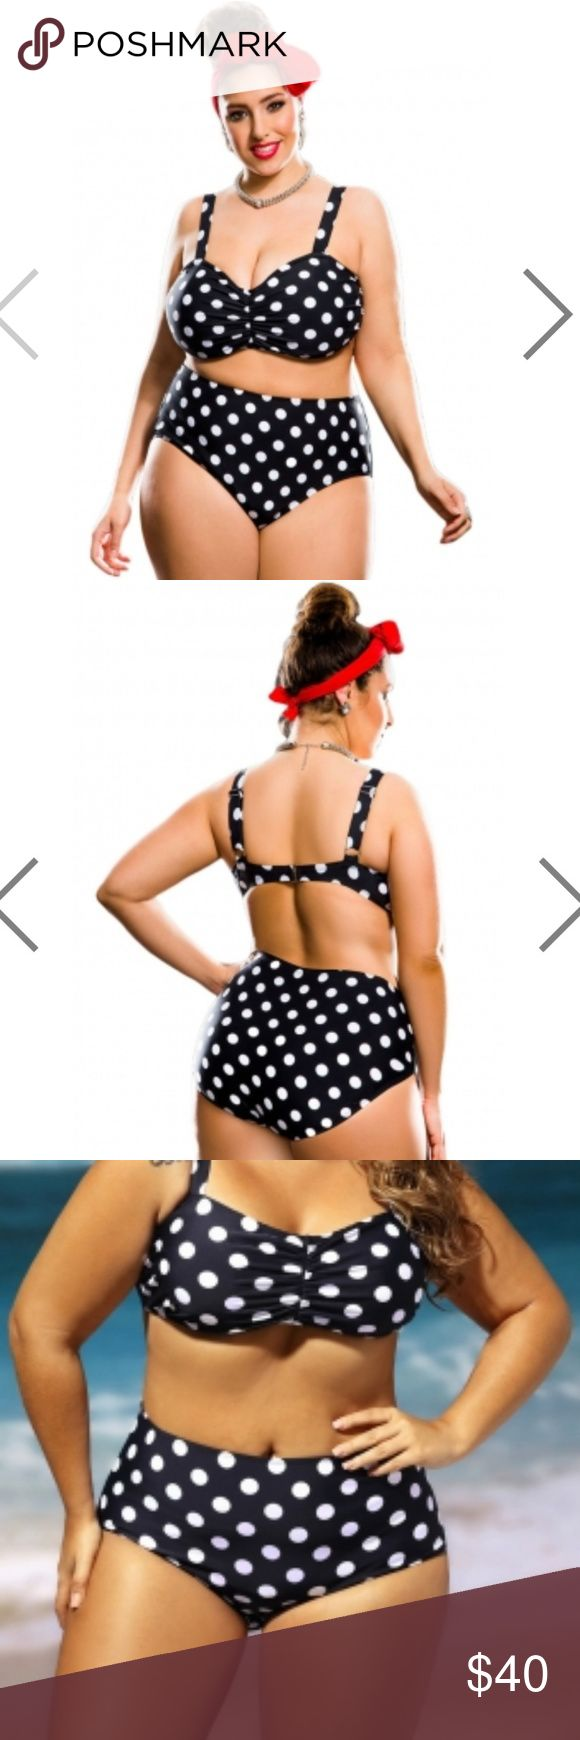 Polka Dot Plus Size High Waist Bikini Swimsuit Looking for a plus size bikini that will give you a va-va-voom vintage glam look. This is it! The sweetheart neckline creates a sexy decolletage while the polka dot print or in solid color keeps it flirty.  Absolutely stunning with the matching bottom features high waist, black white polka dot print or in solid color, perfect enough to give the va-va-voom vintage glam look you've been searching for. No underwire, with detachable bra pads. Real…